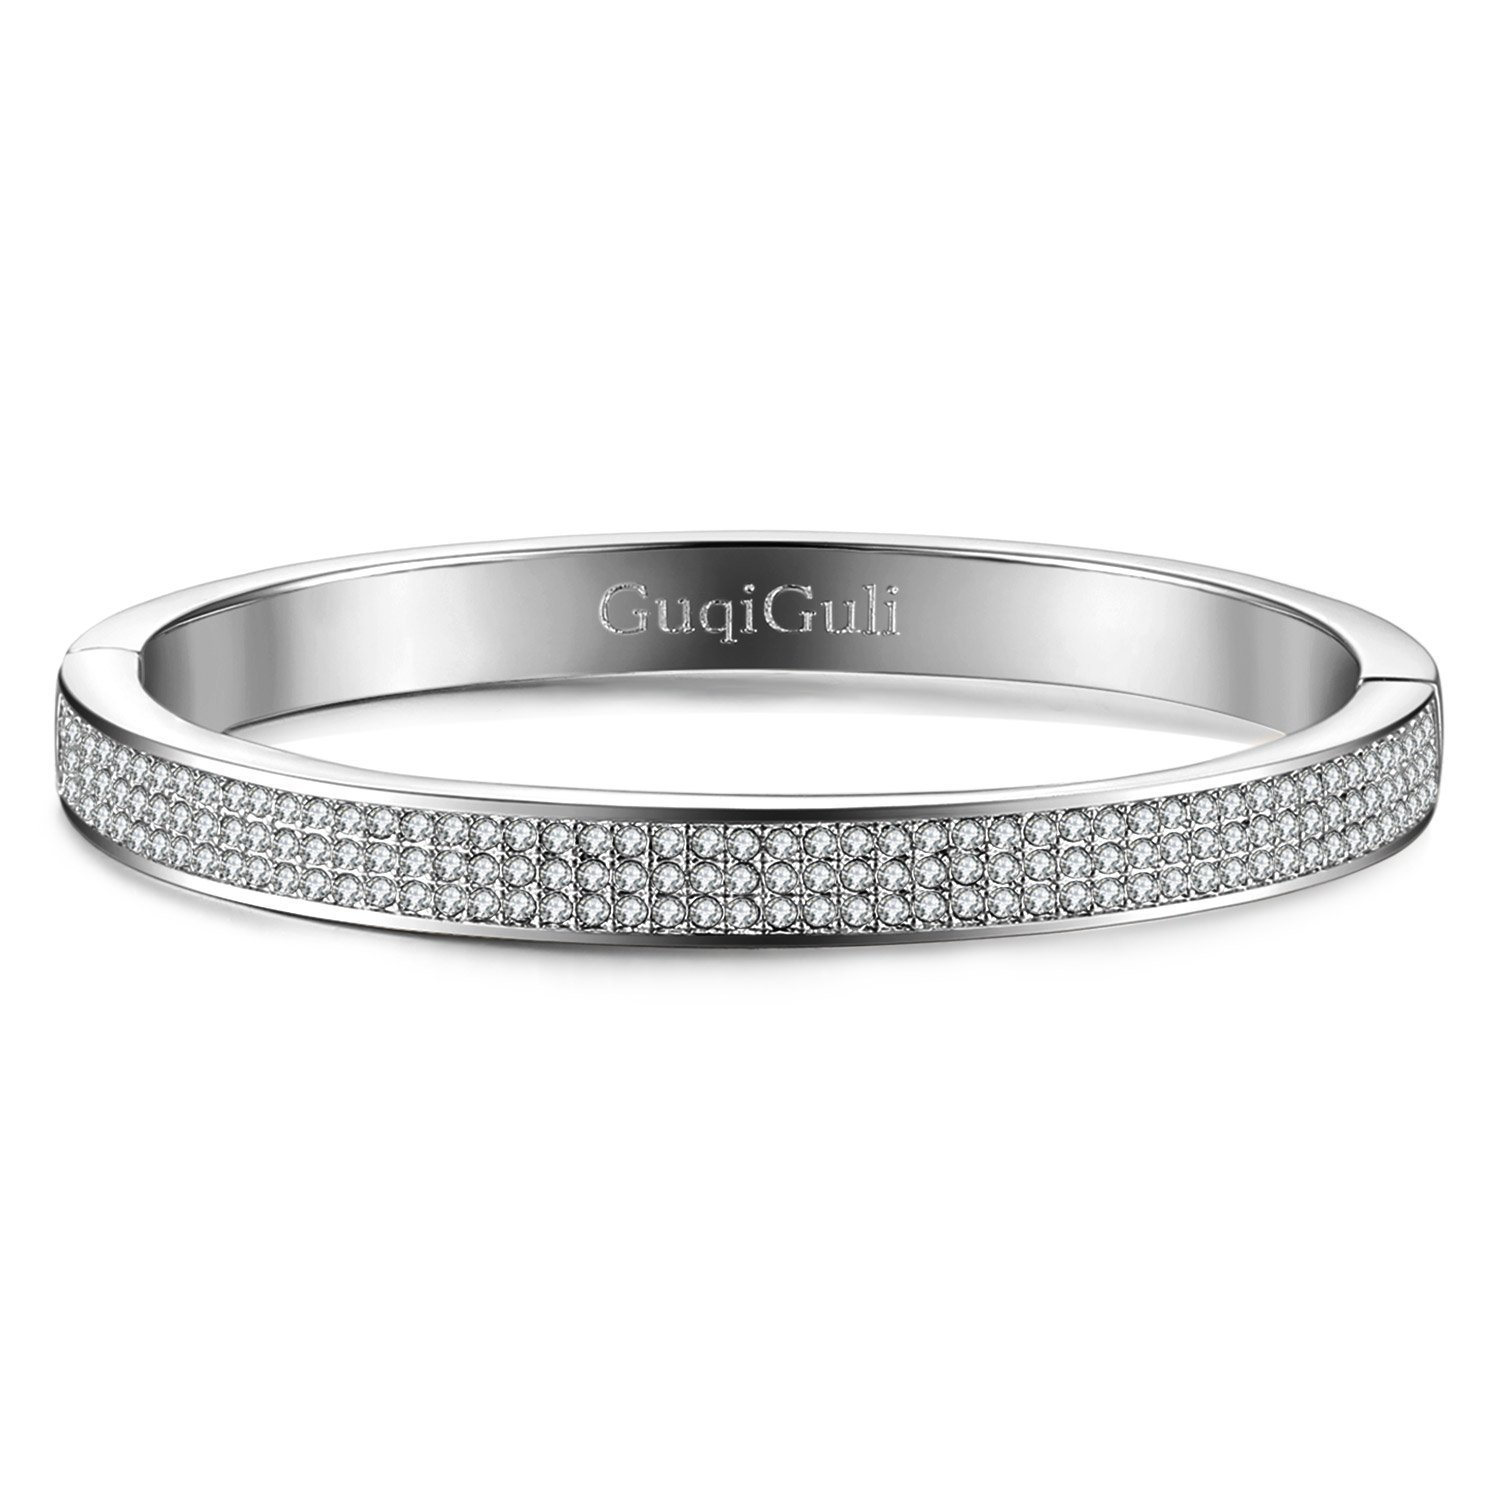 1e48608fc Amazon.com: GuqiGuli Swarovski Elements Crystal Pave Oval Silver-Tone  Bangle Bracelet for Women, 7.4'': Jewelry